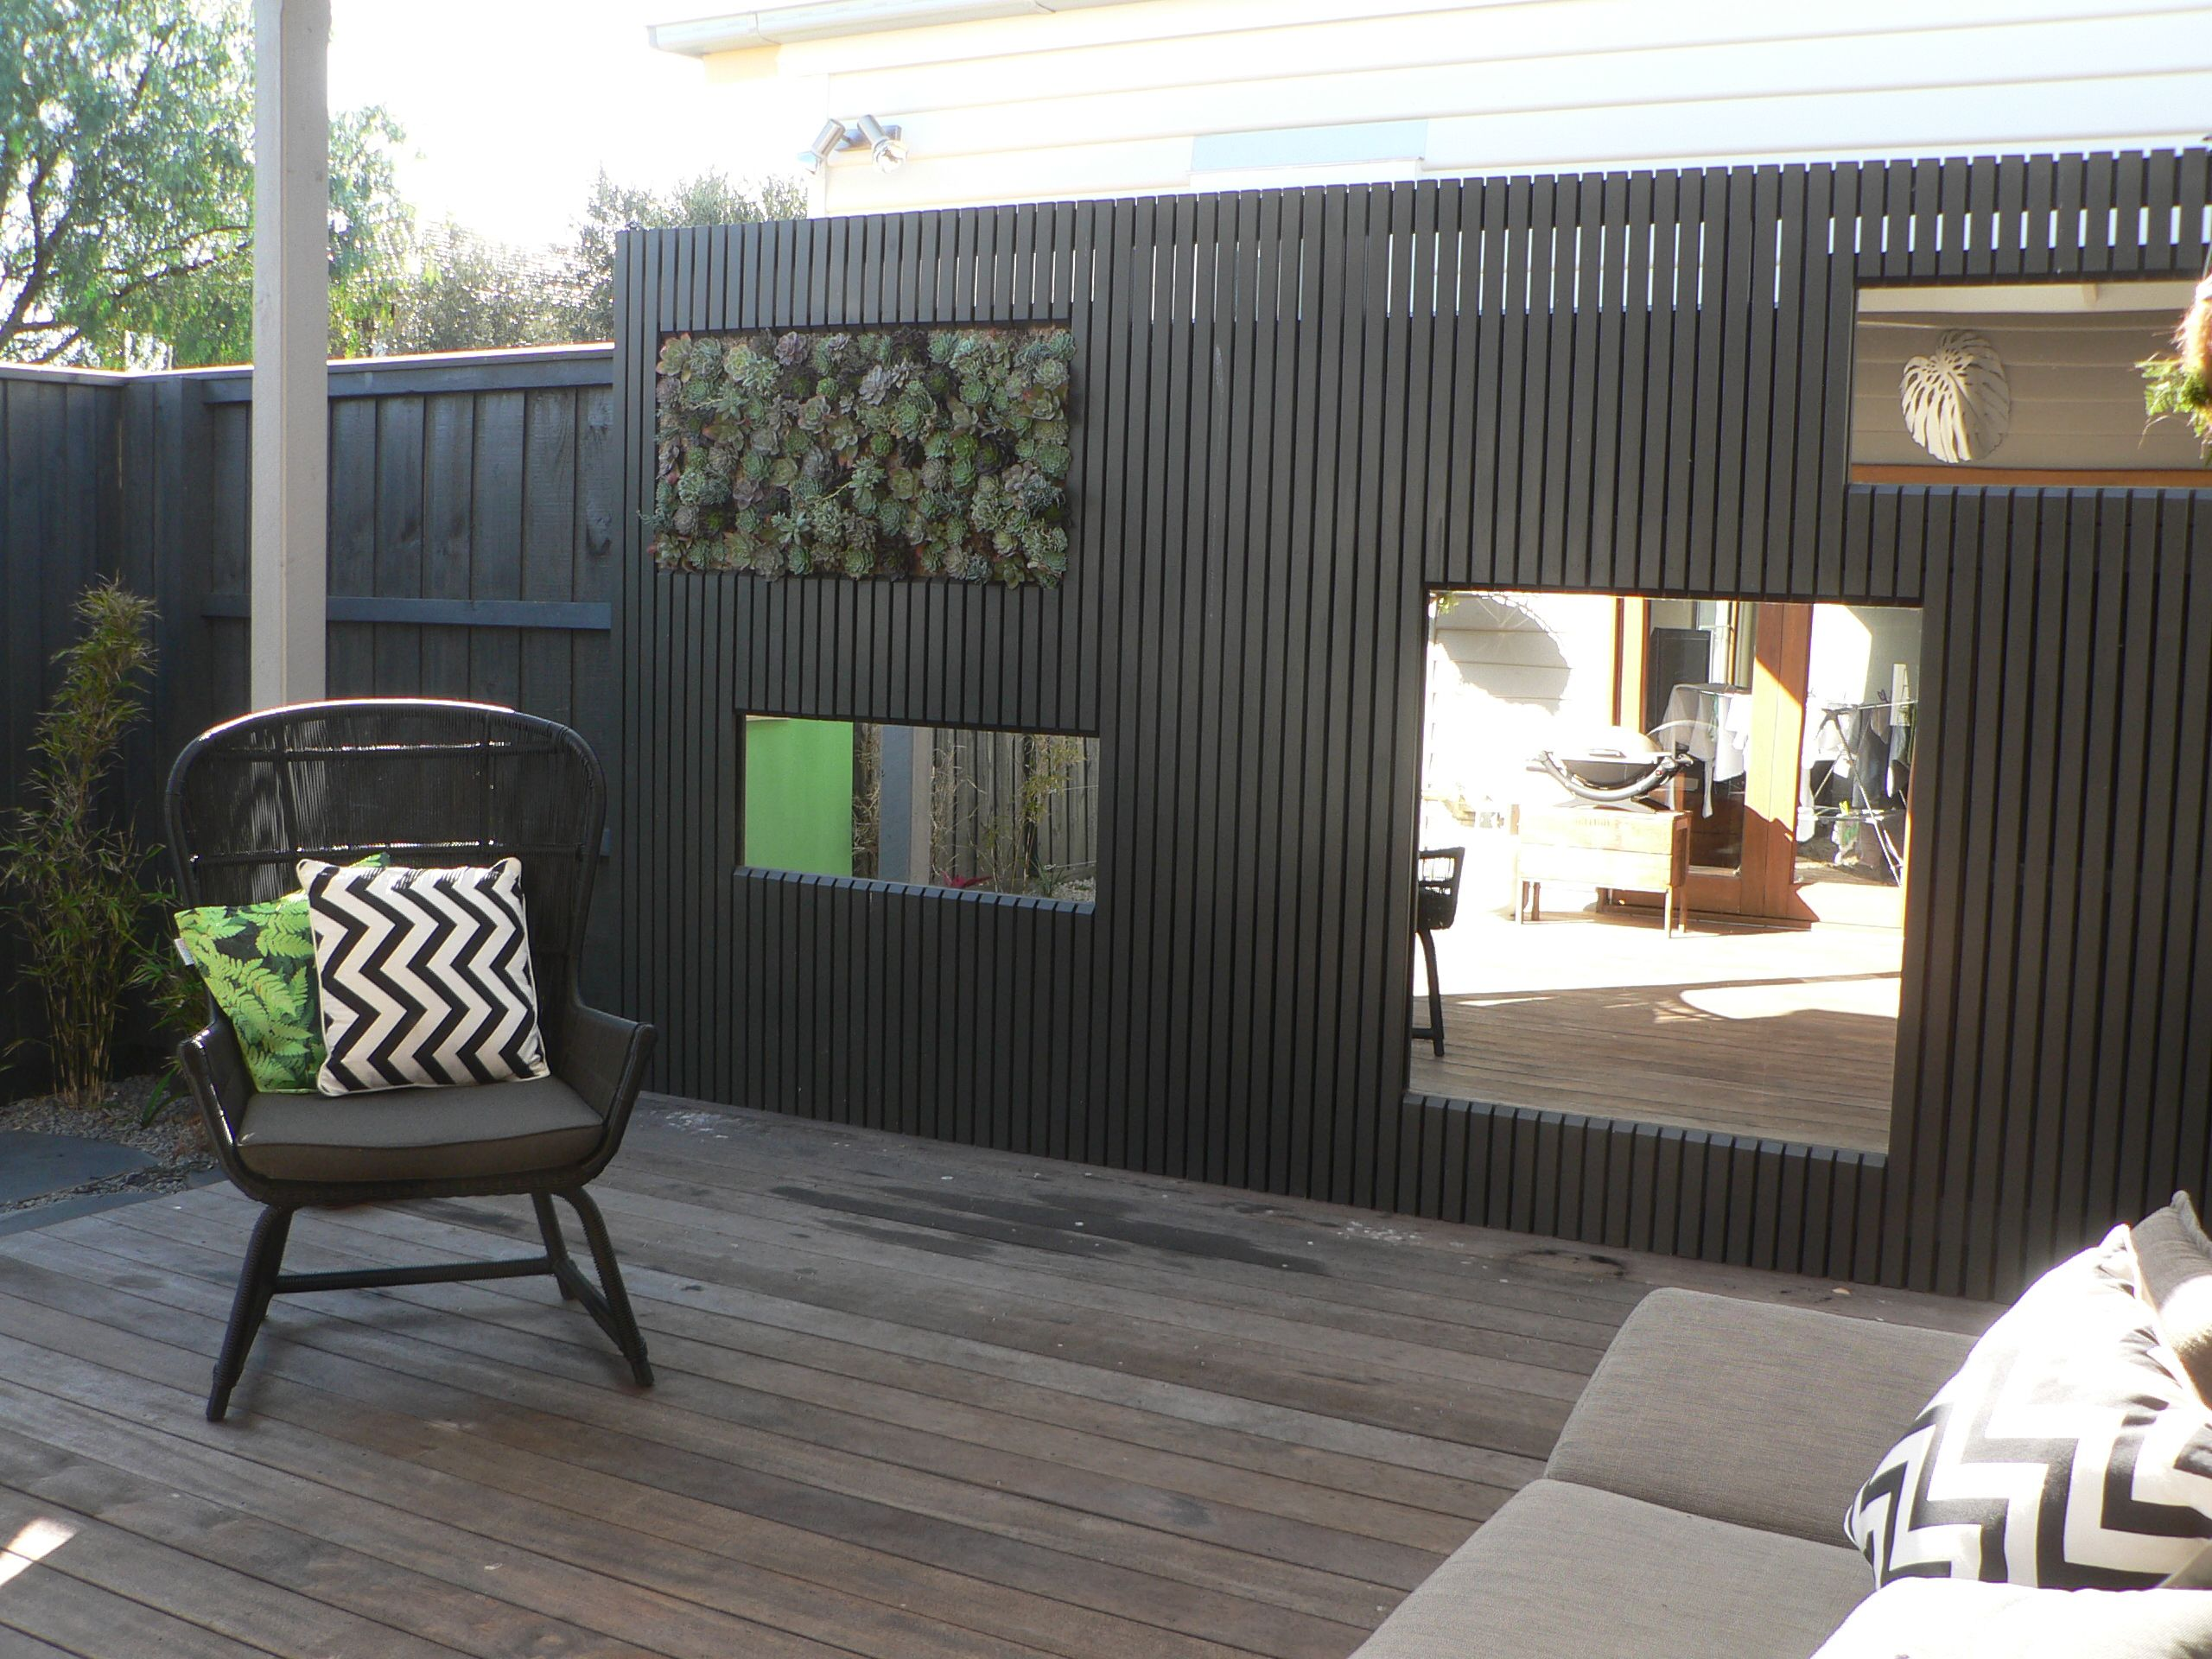 vertical succulent garden mirrors turn this side fence into a